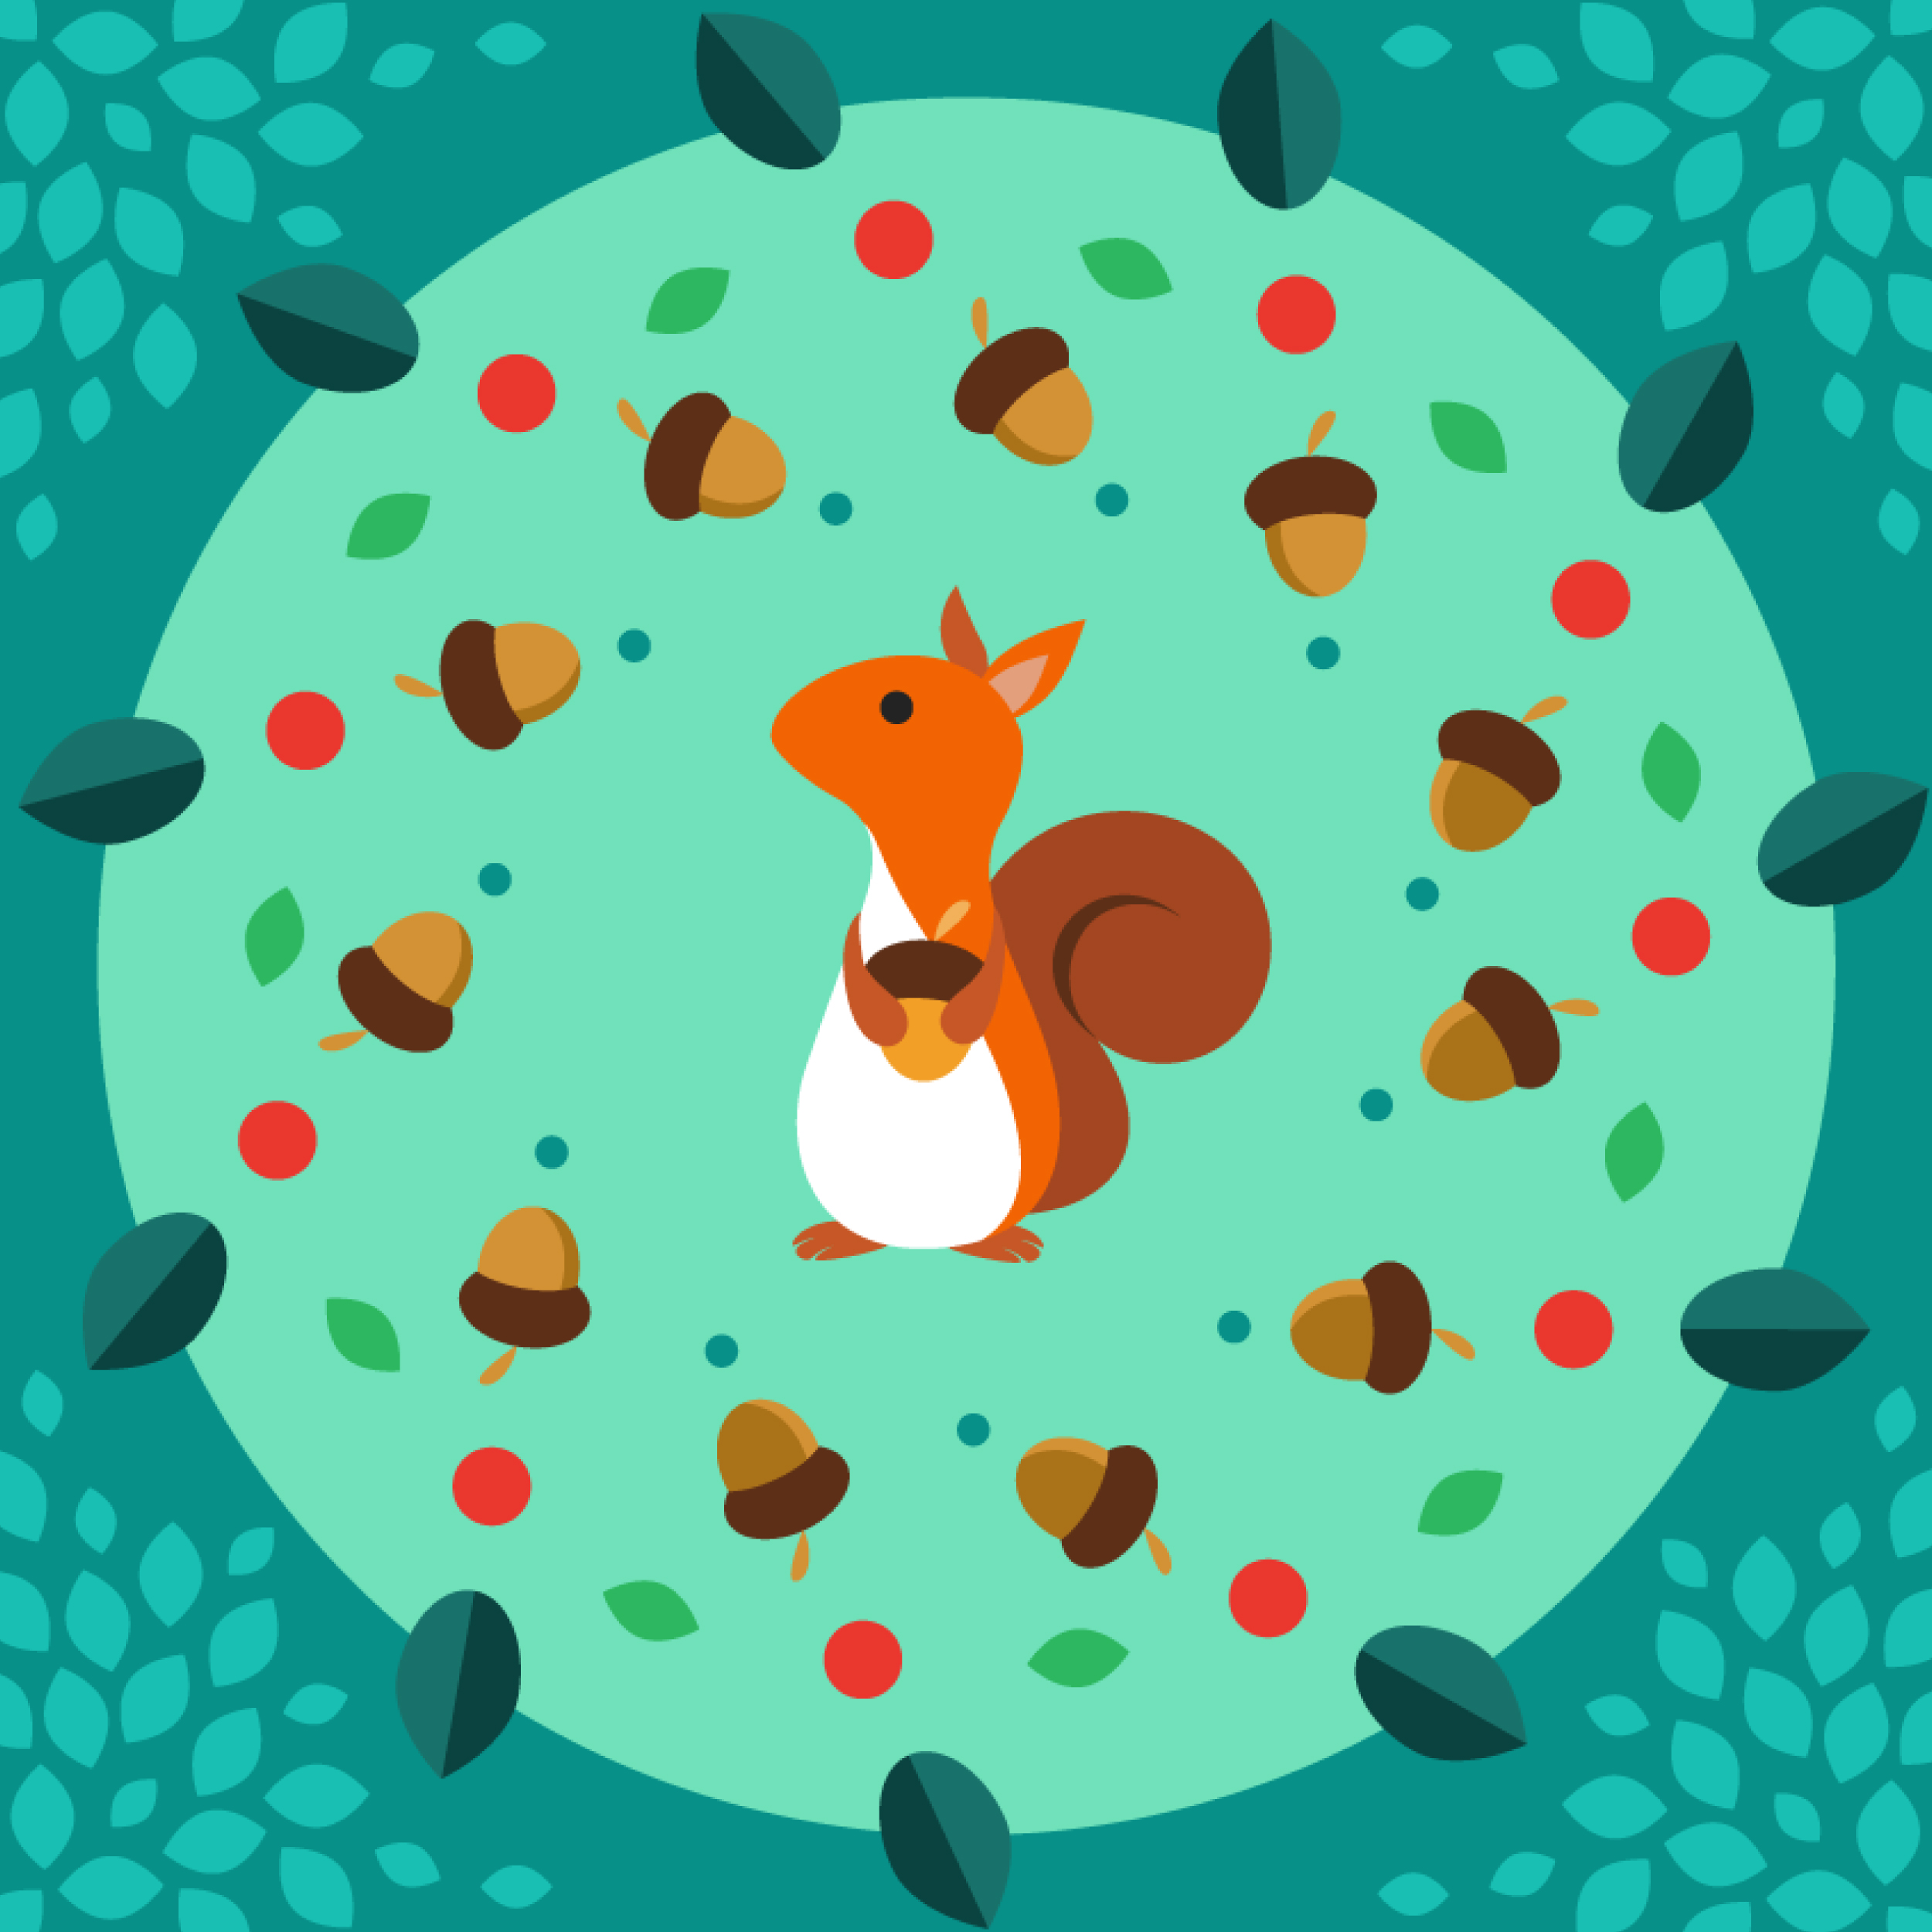 95956 download wallpaper Vector, Squirrel, Nuts, Acorn, Art screensavers and pictures for free